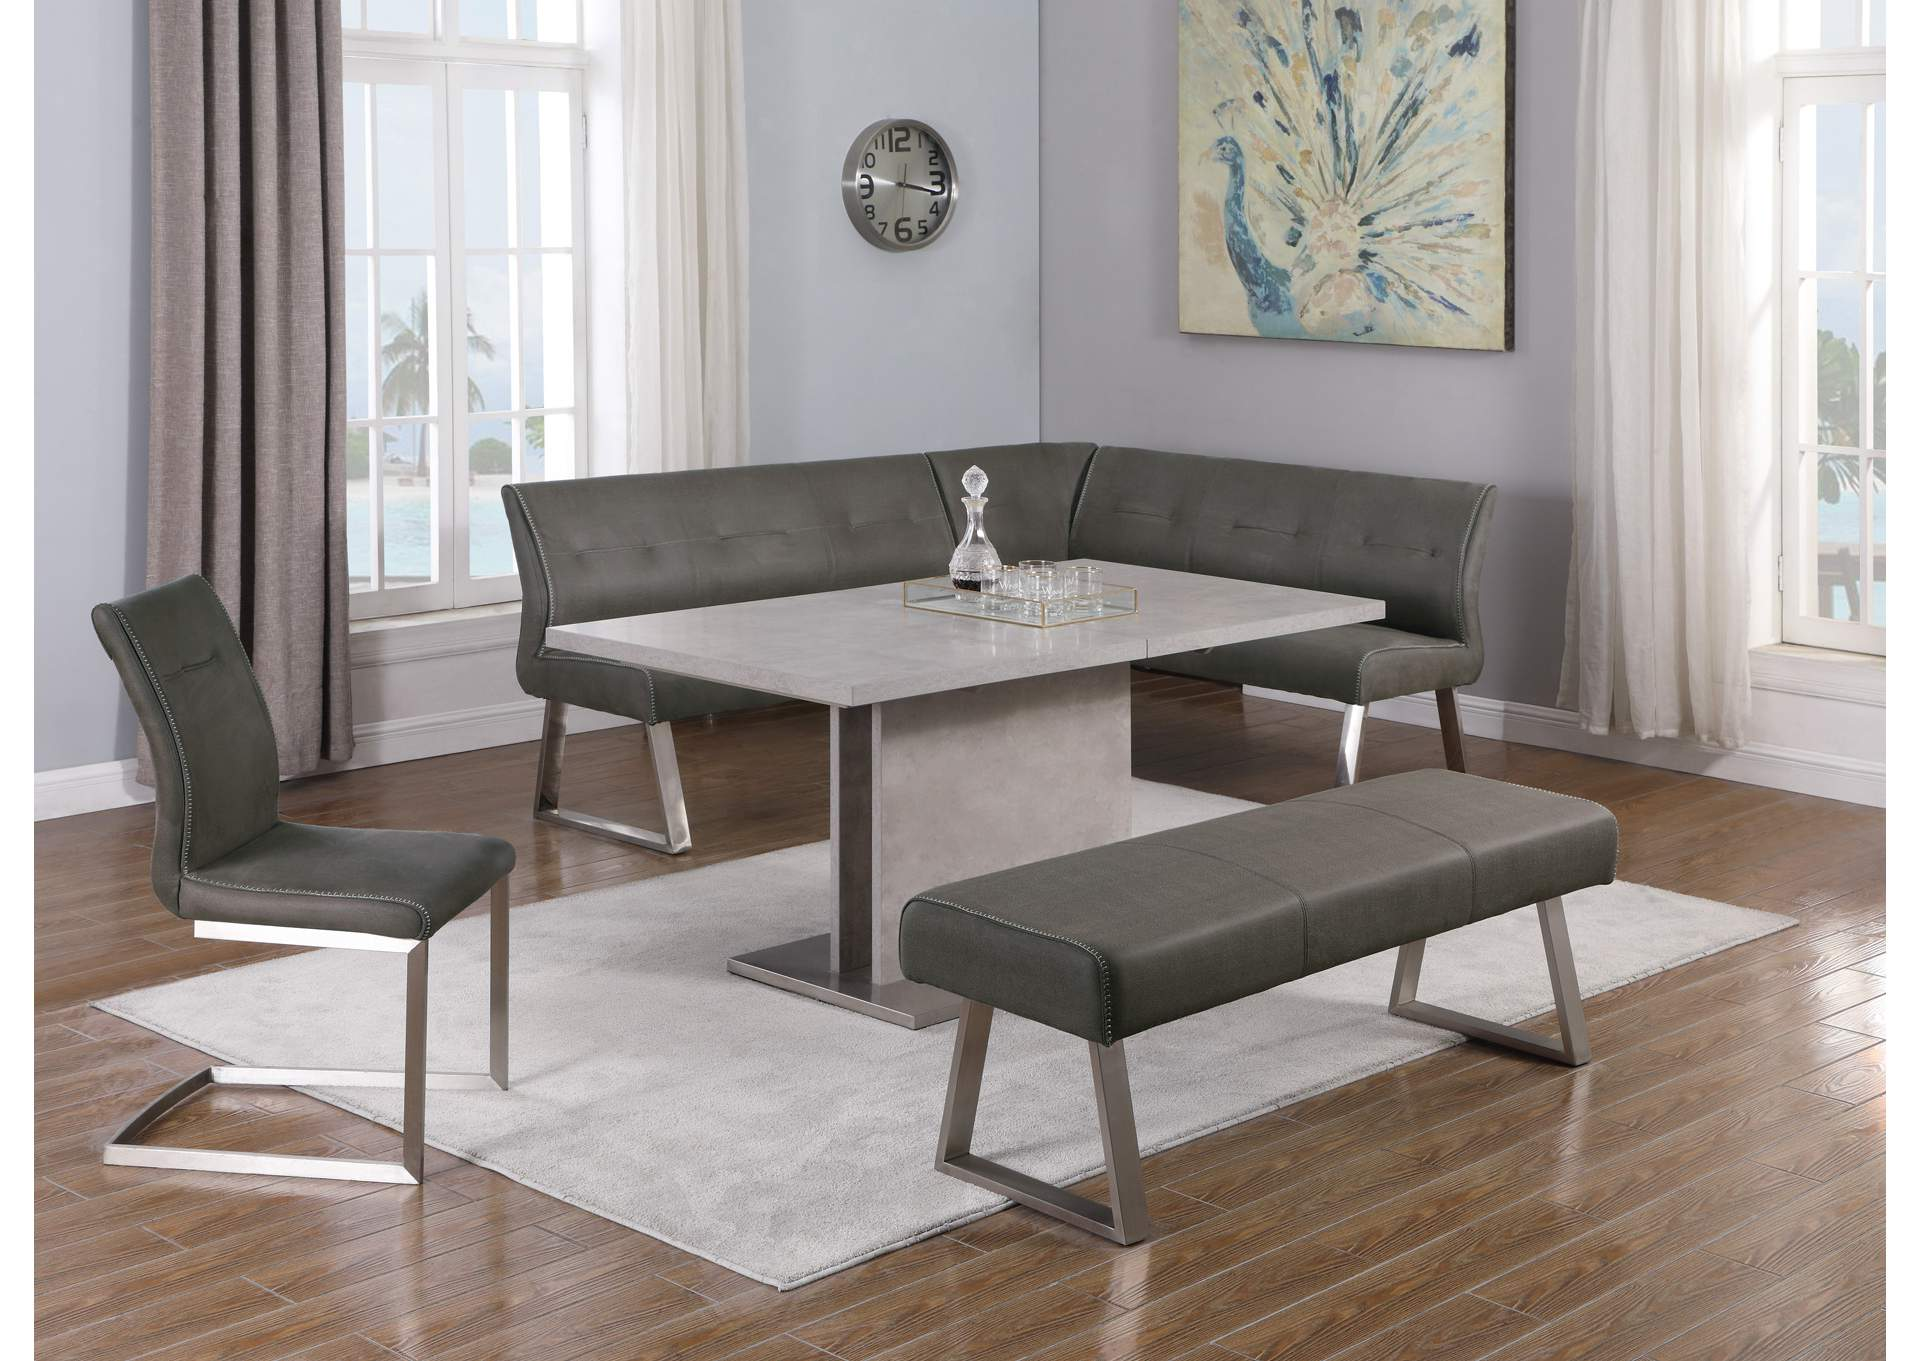 Kalinda Grey Dining Set W Extendable Table 4 Upholstered Chairs Sweet Dreams Bedding Furniture